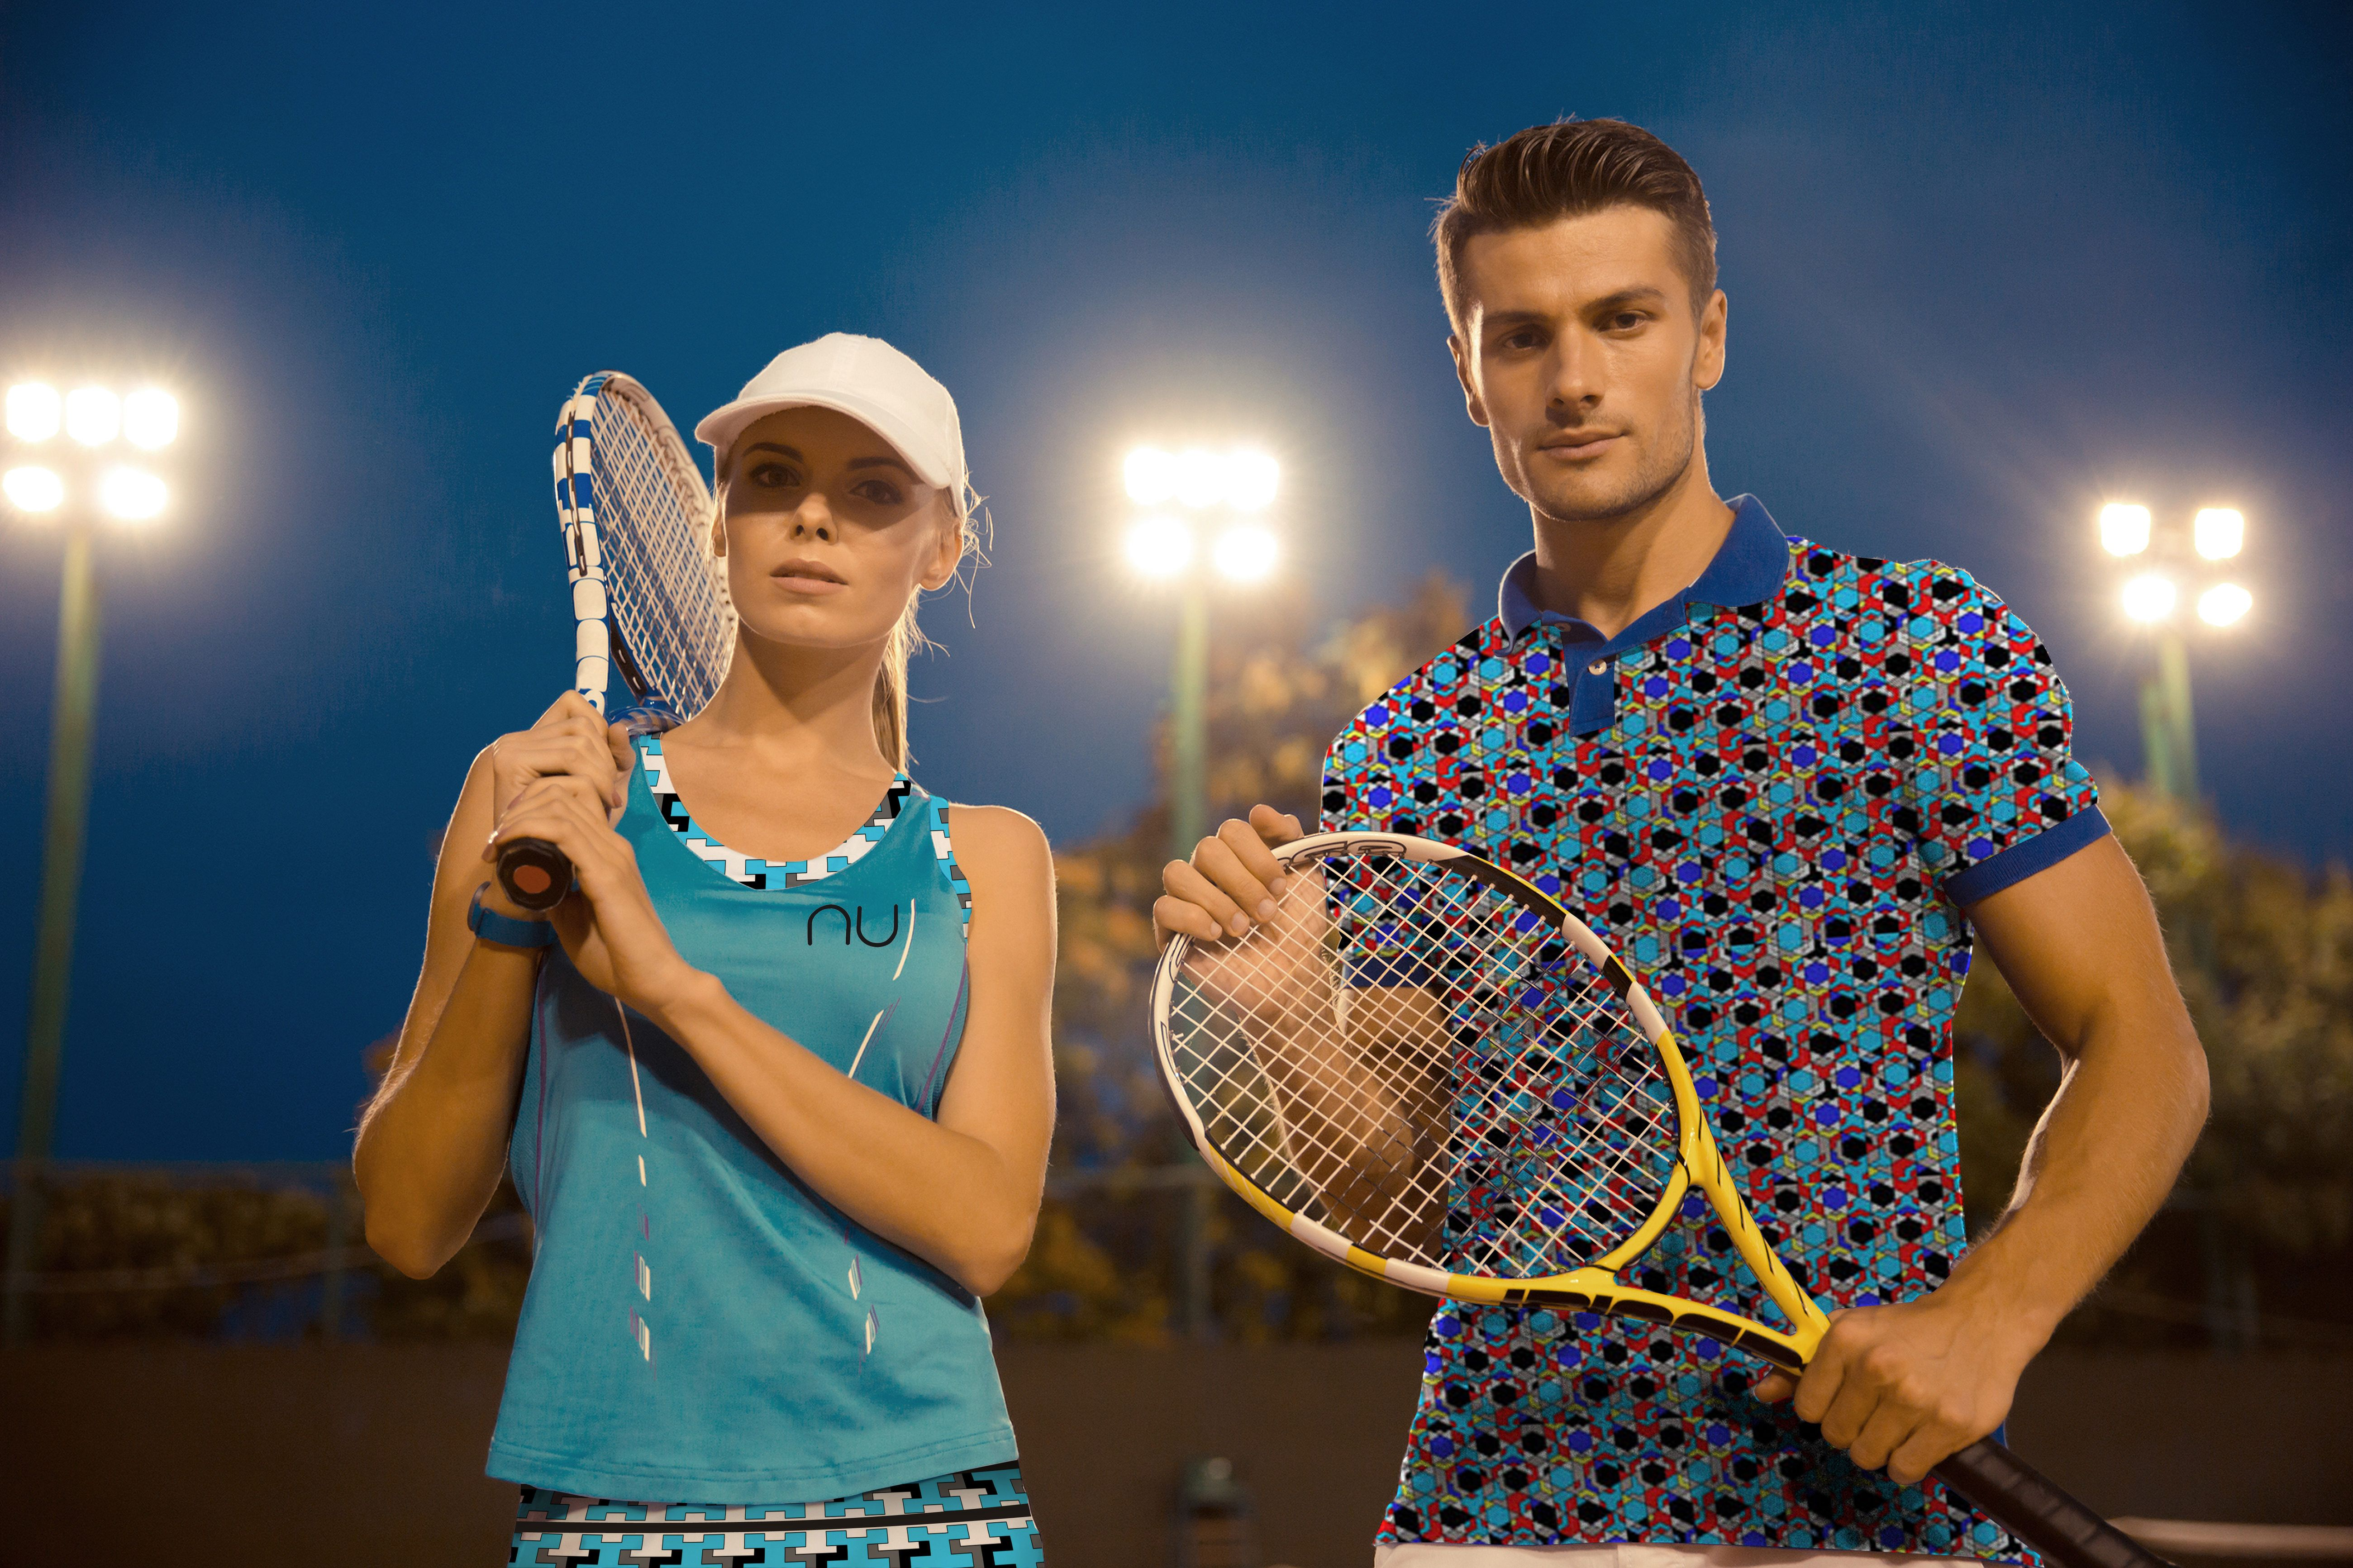 Pin On Tennis Accessories